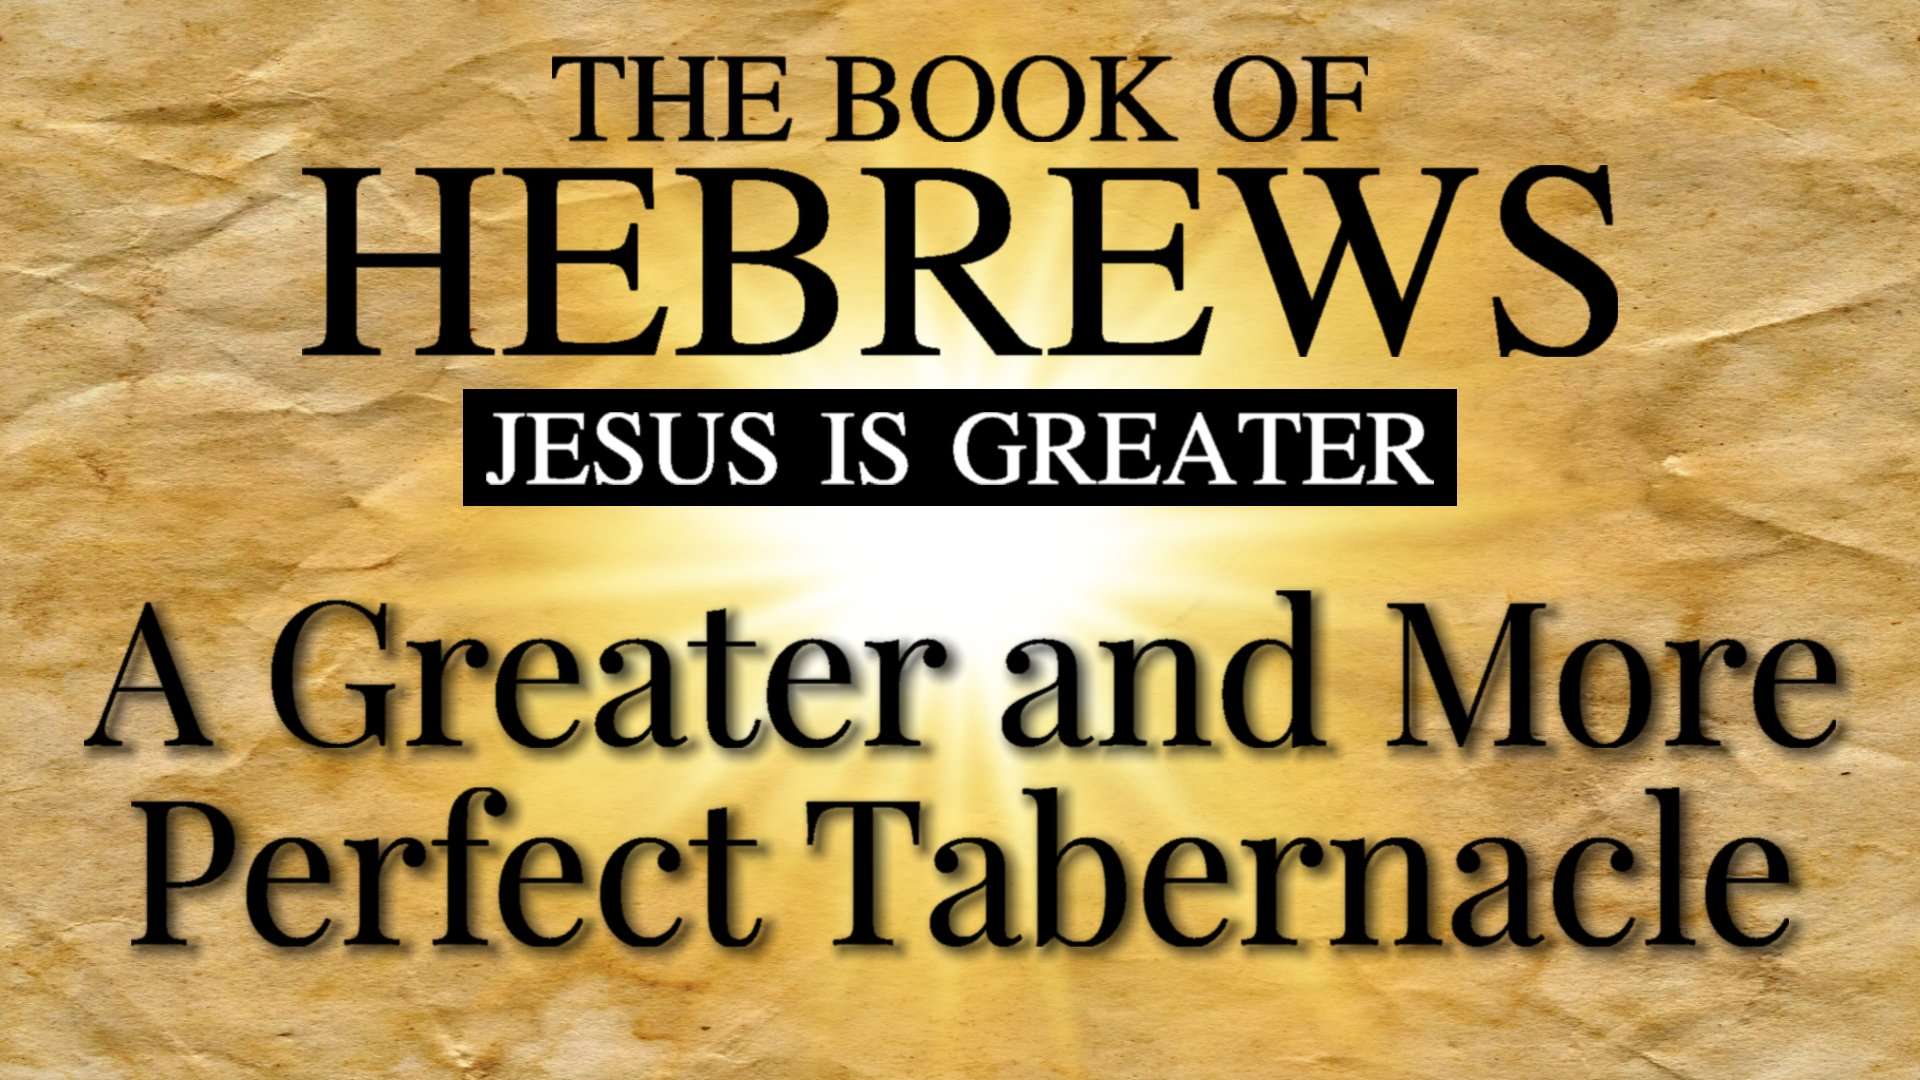 17 A Greater and More Perfect Tabernacle